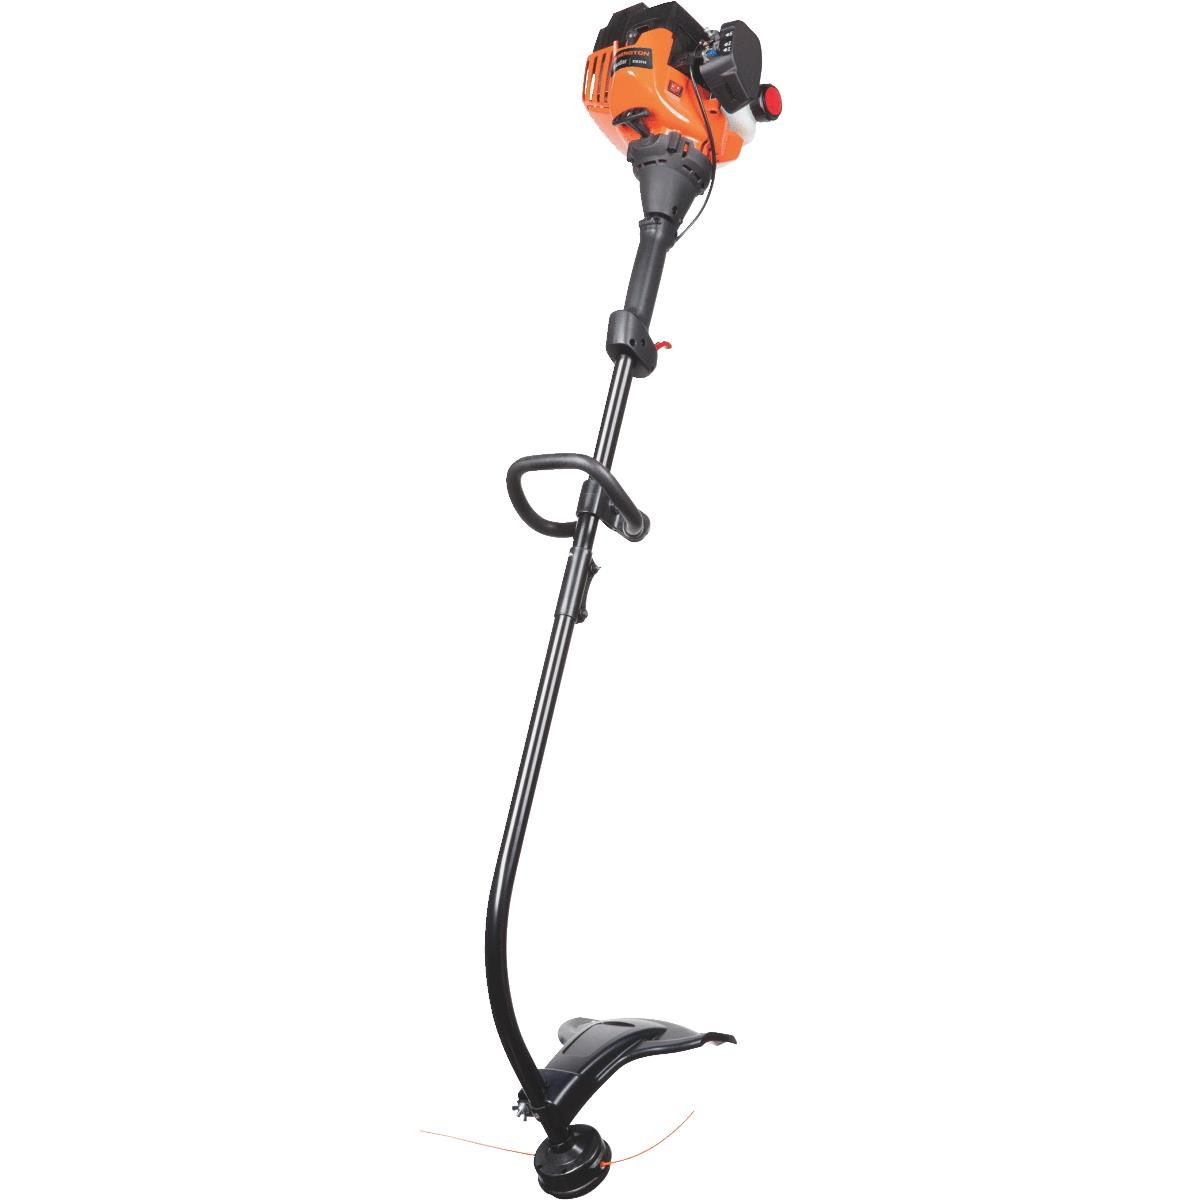 Buy Remington Rm 16 In Curved Shaft Gas String Trimmer